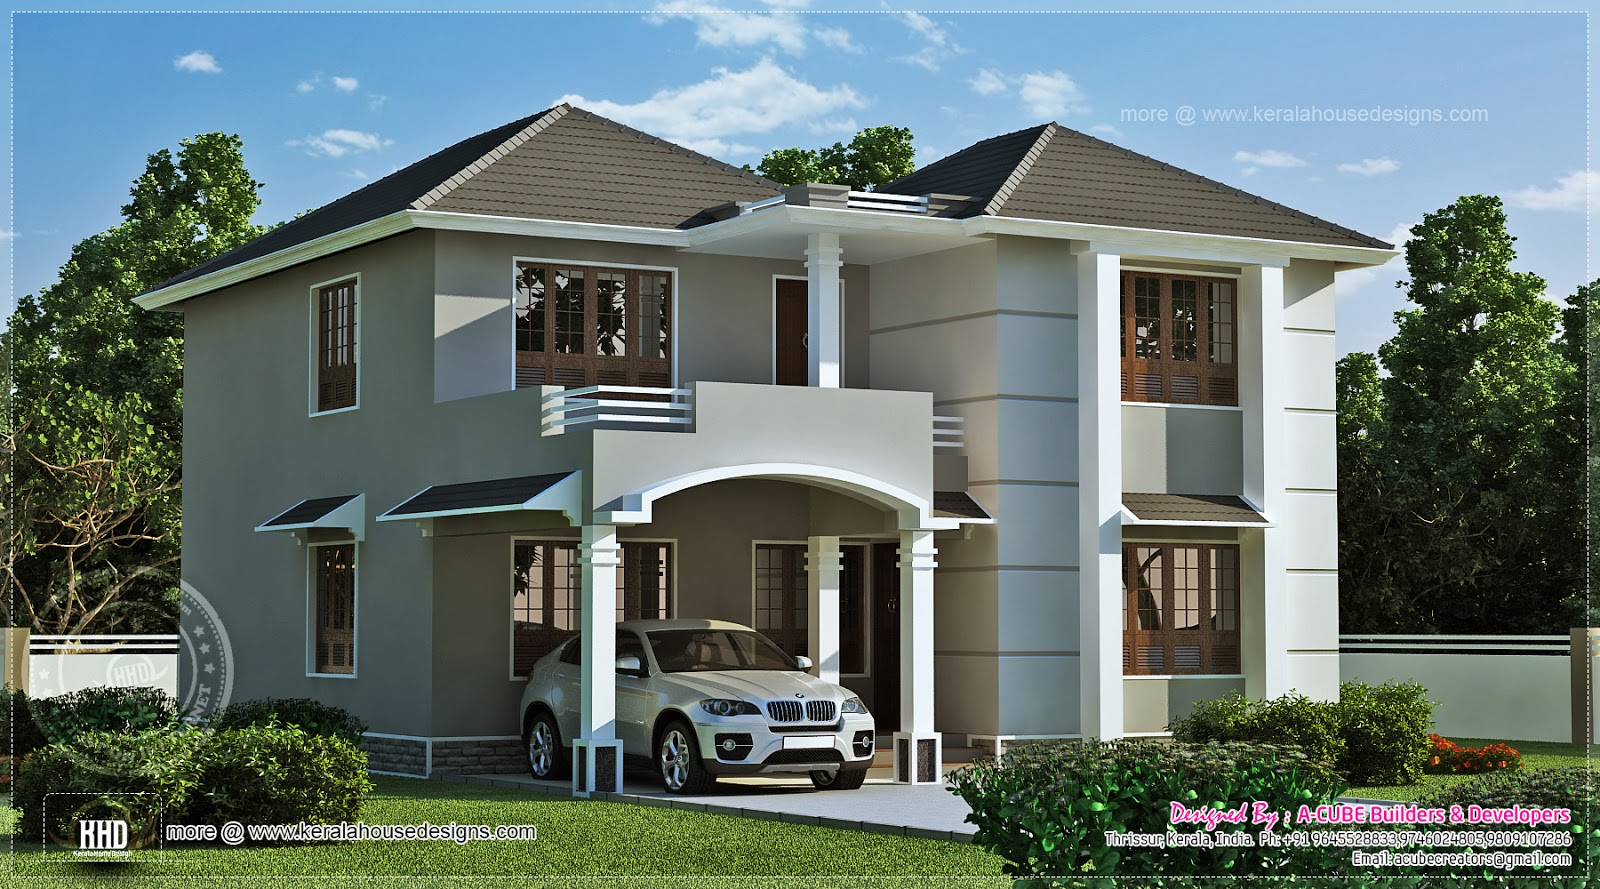 May 2013 kerala home design and floor plans - Exterior designs of houses in india ...